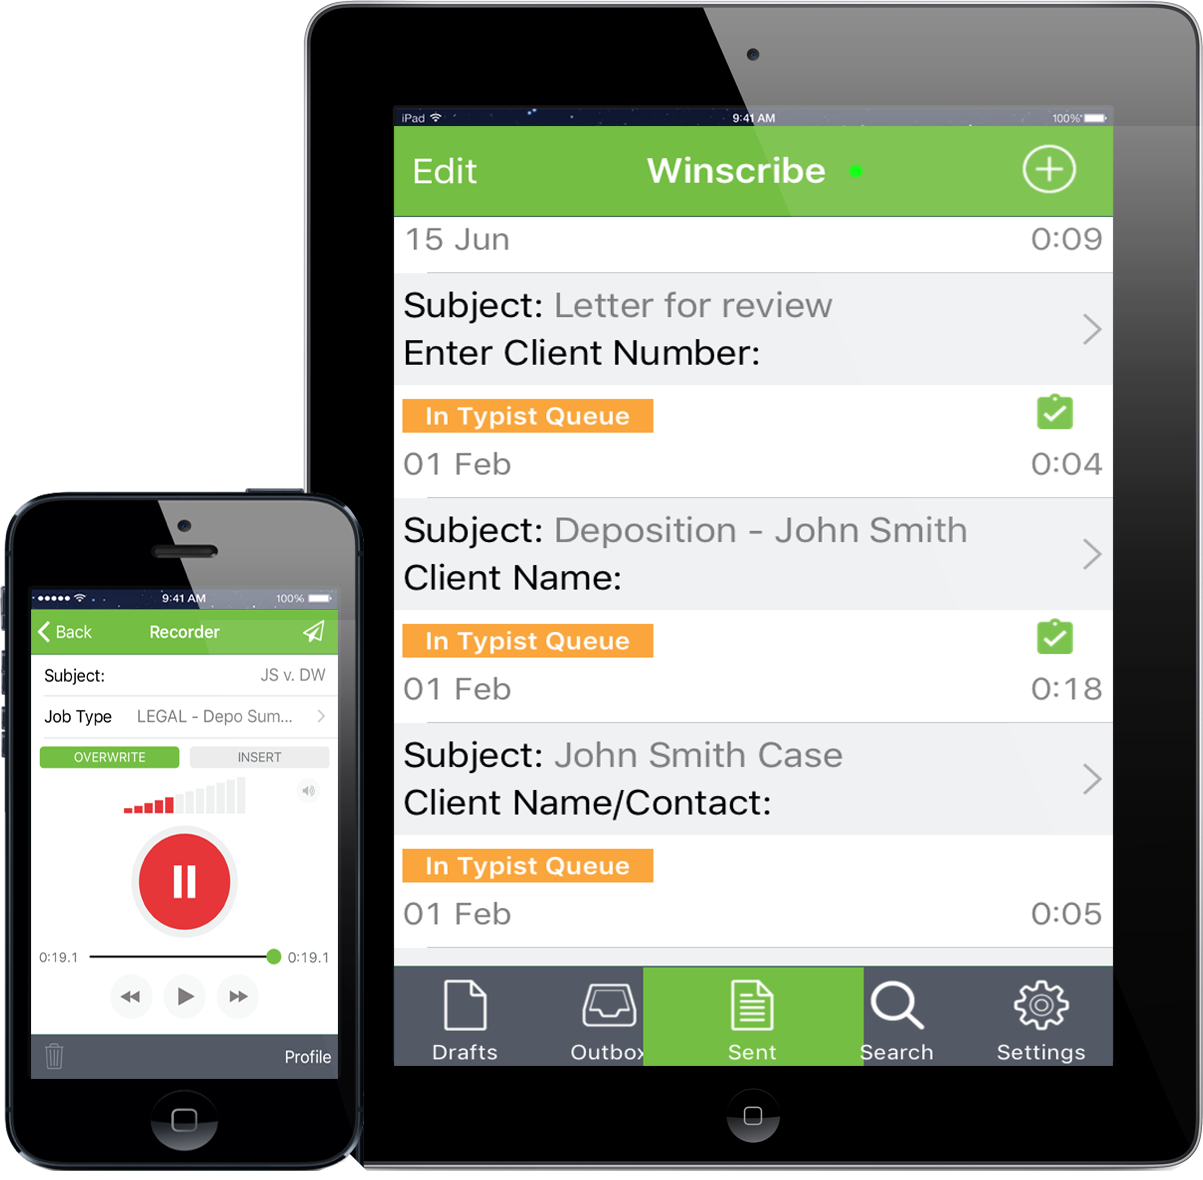 Winscribe Professional Mobile App